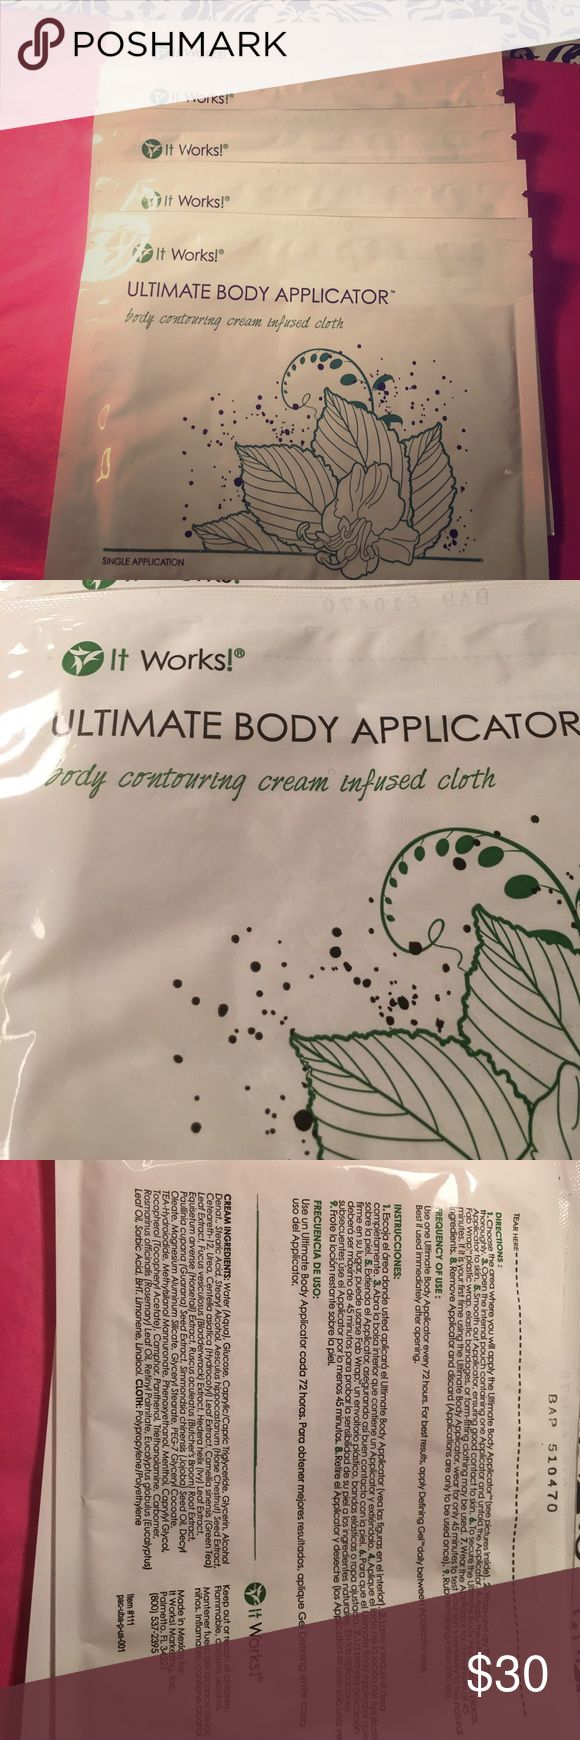 """💚It Works! Ultimate Body Applicator 💚It Works! Ultimate Body Applicator Body Contouring Cream Infused Cloth.         Expect ultimate results in as little as 45 minutes with """"that crazy wrap thing™""""—the Ultimate Body Applicator  💚Tightens, tones, & firms the skin 💚Redefines the appearance of your body's contours 💚Improves skin texture & tightness 💚Mess-free and simple to use Results in as little as 45 minutes Contains botanical extracts it works Other"""